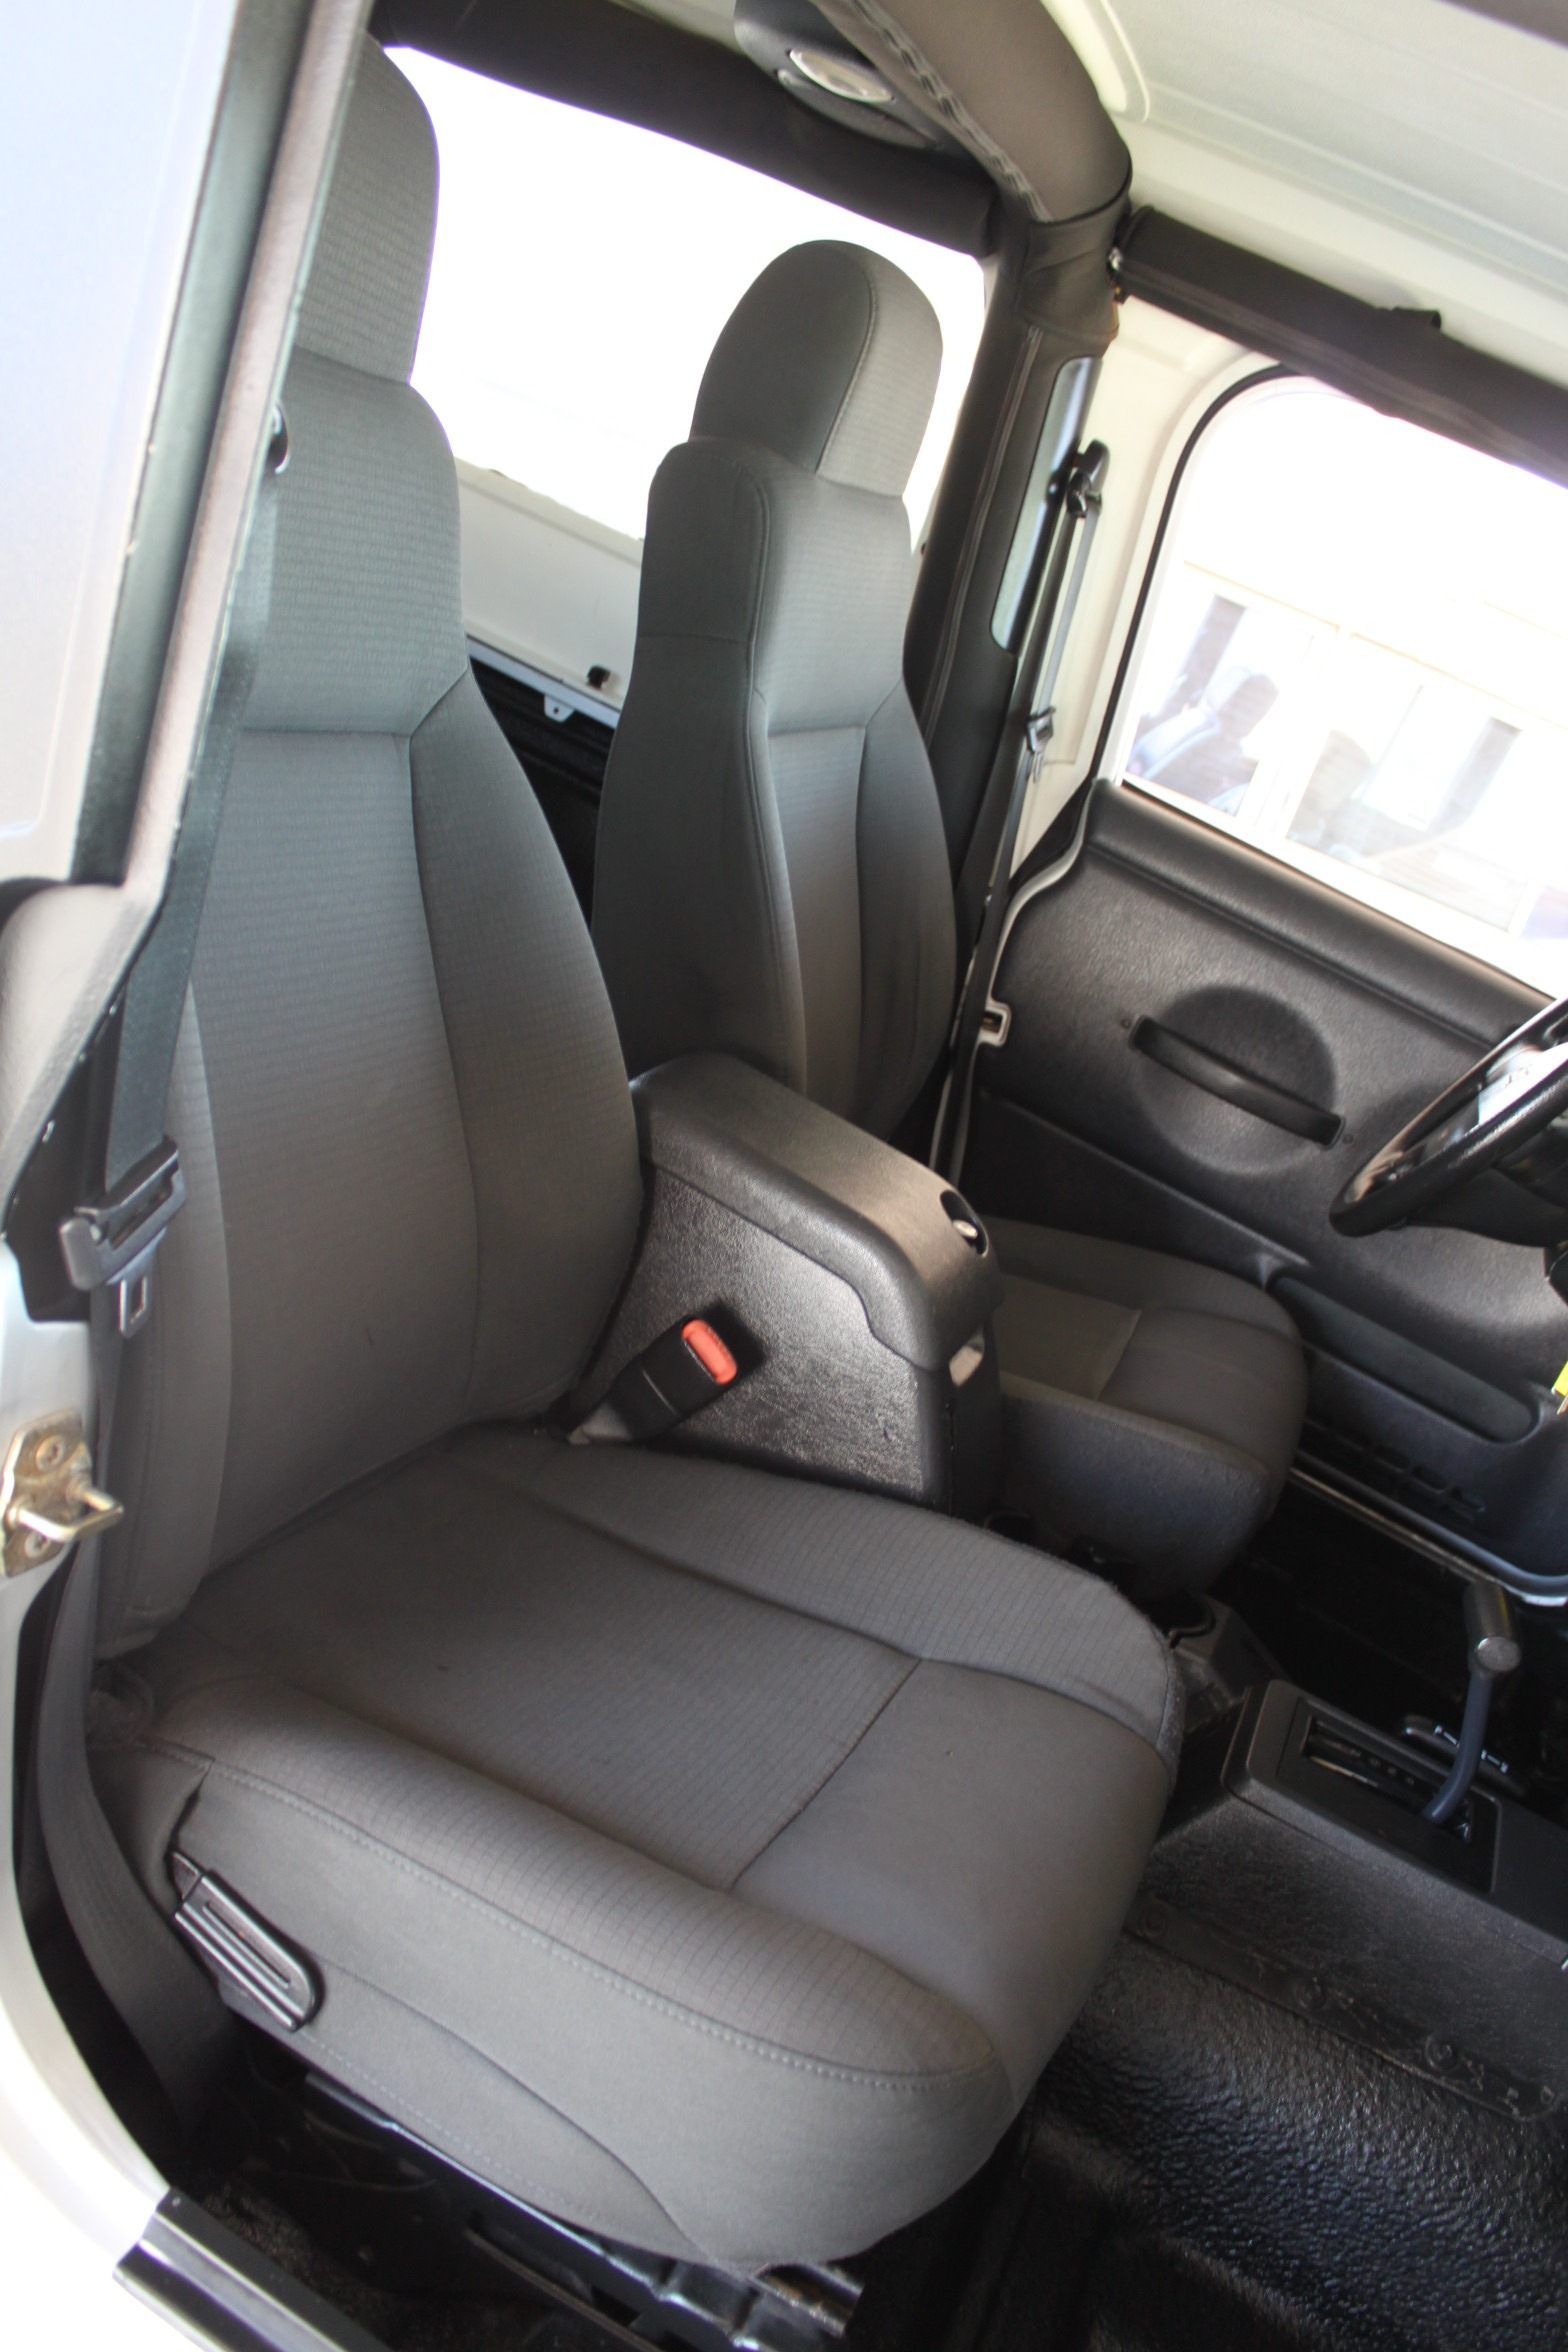 Used-2006-Jeep-Wrangler-Unlimited-LWB-Lincoln